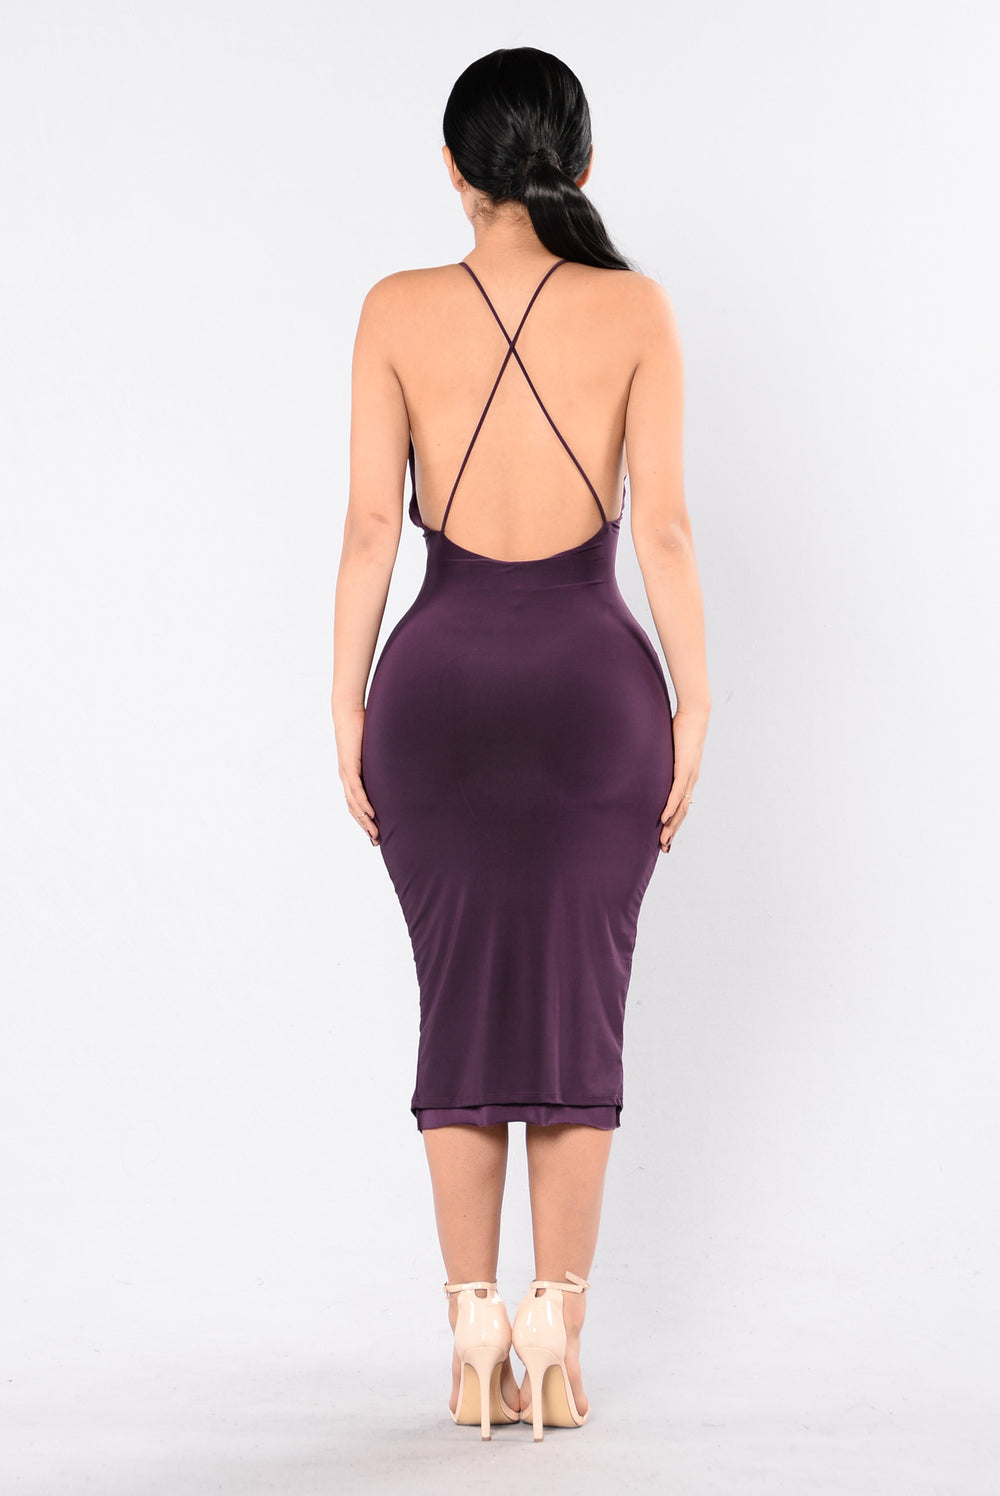 Boldly Bare Dress - Purple